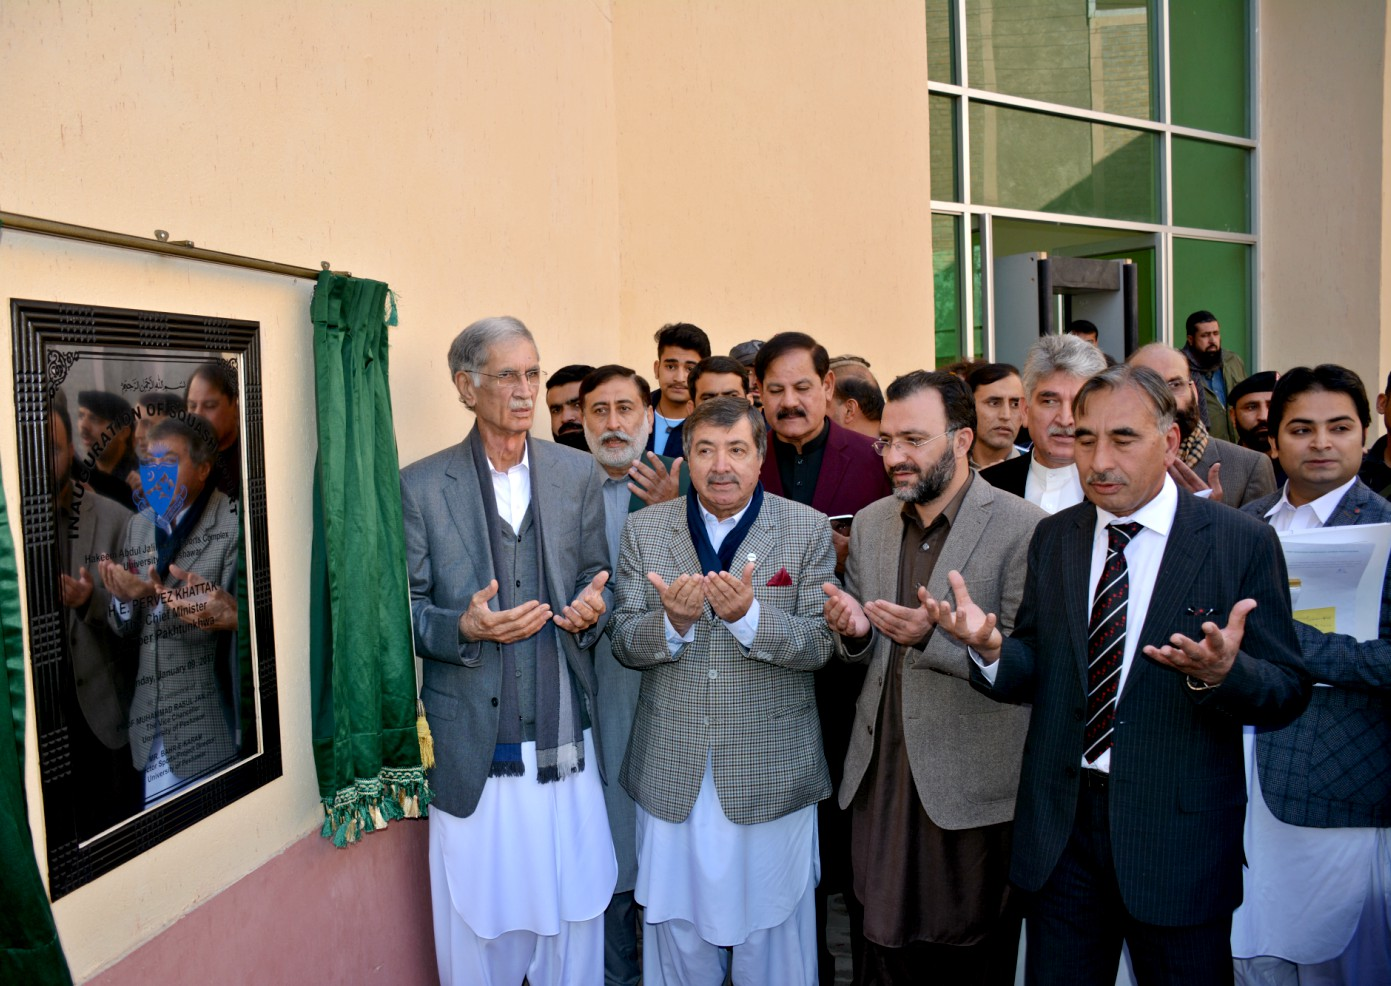 Chief Minister Khyber Pukhtunkhwa Mr. Pervez Khattak Inaugurating Squash Court at Directorate of Sports, University of Peshawar